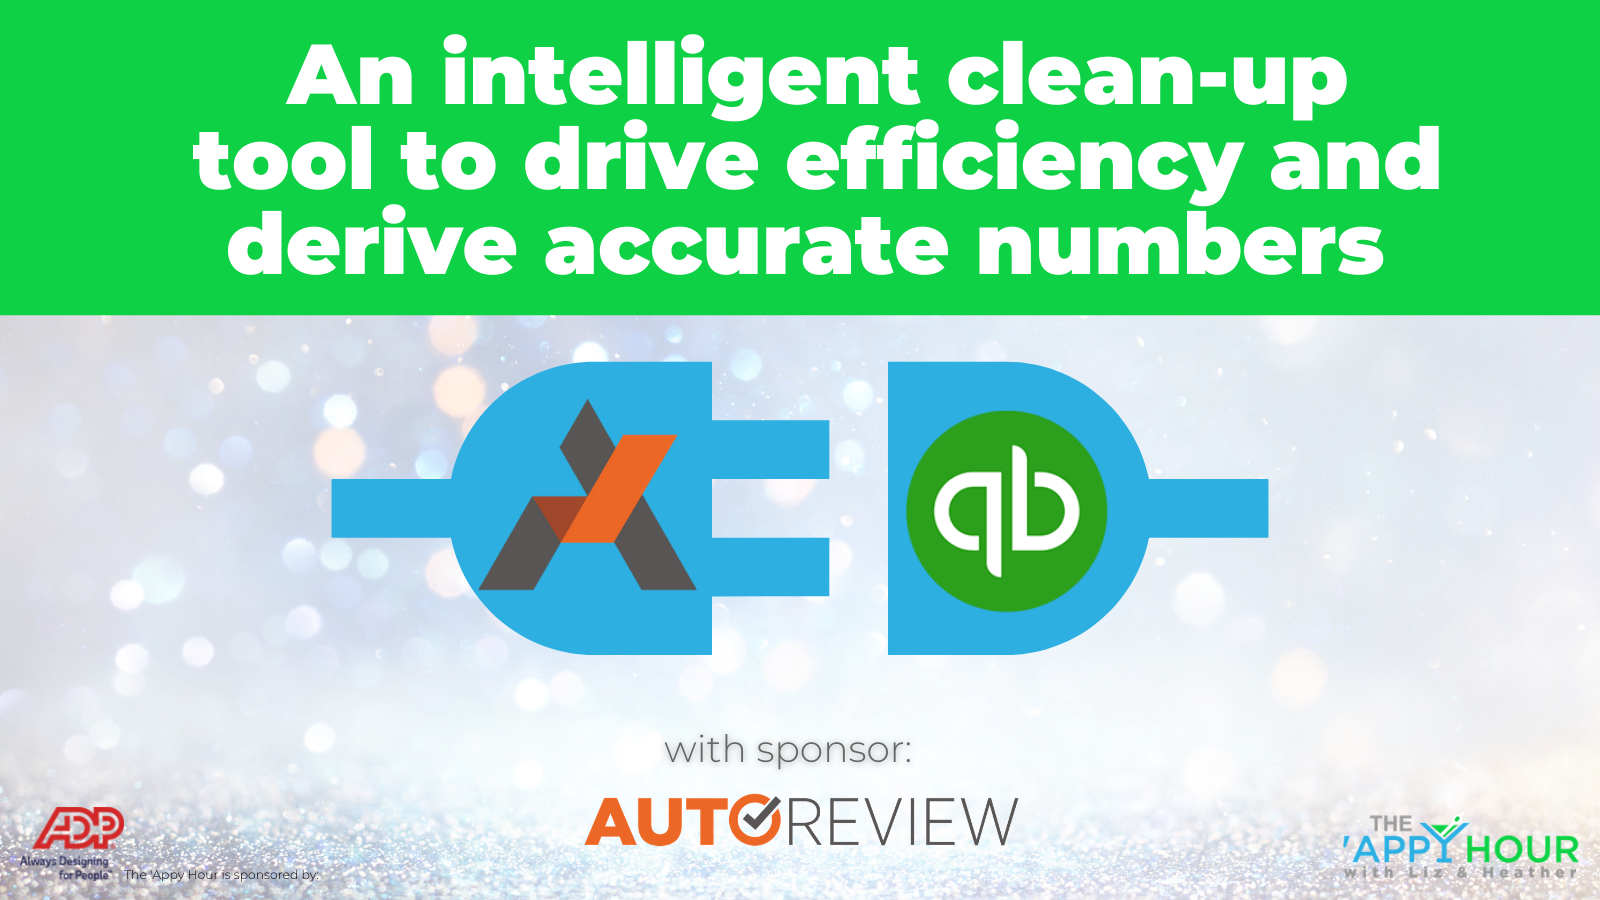 AutoReview: An Intelligent Clean-up Tool to Drive Efficiency + Derive Accurate Numbers